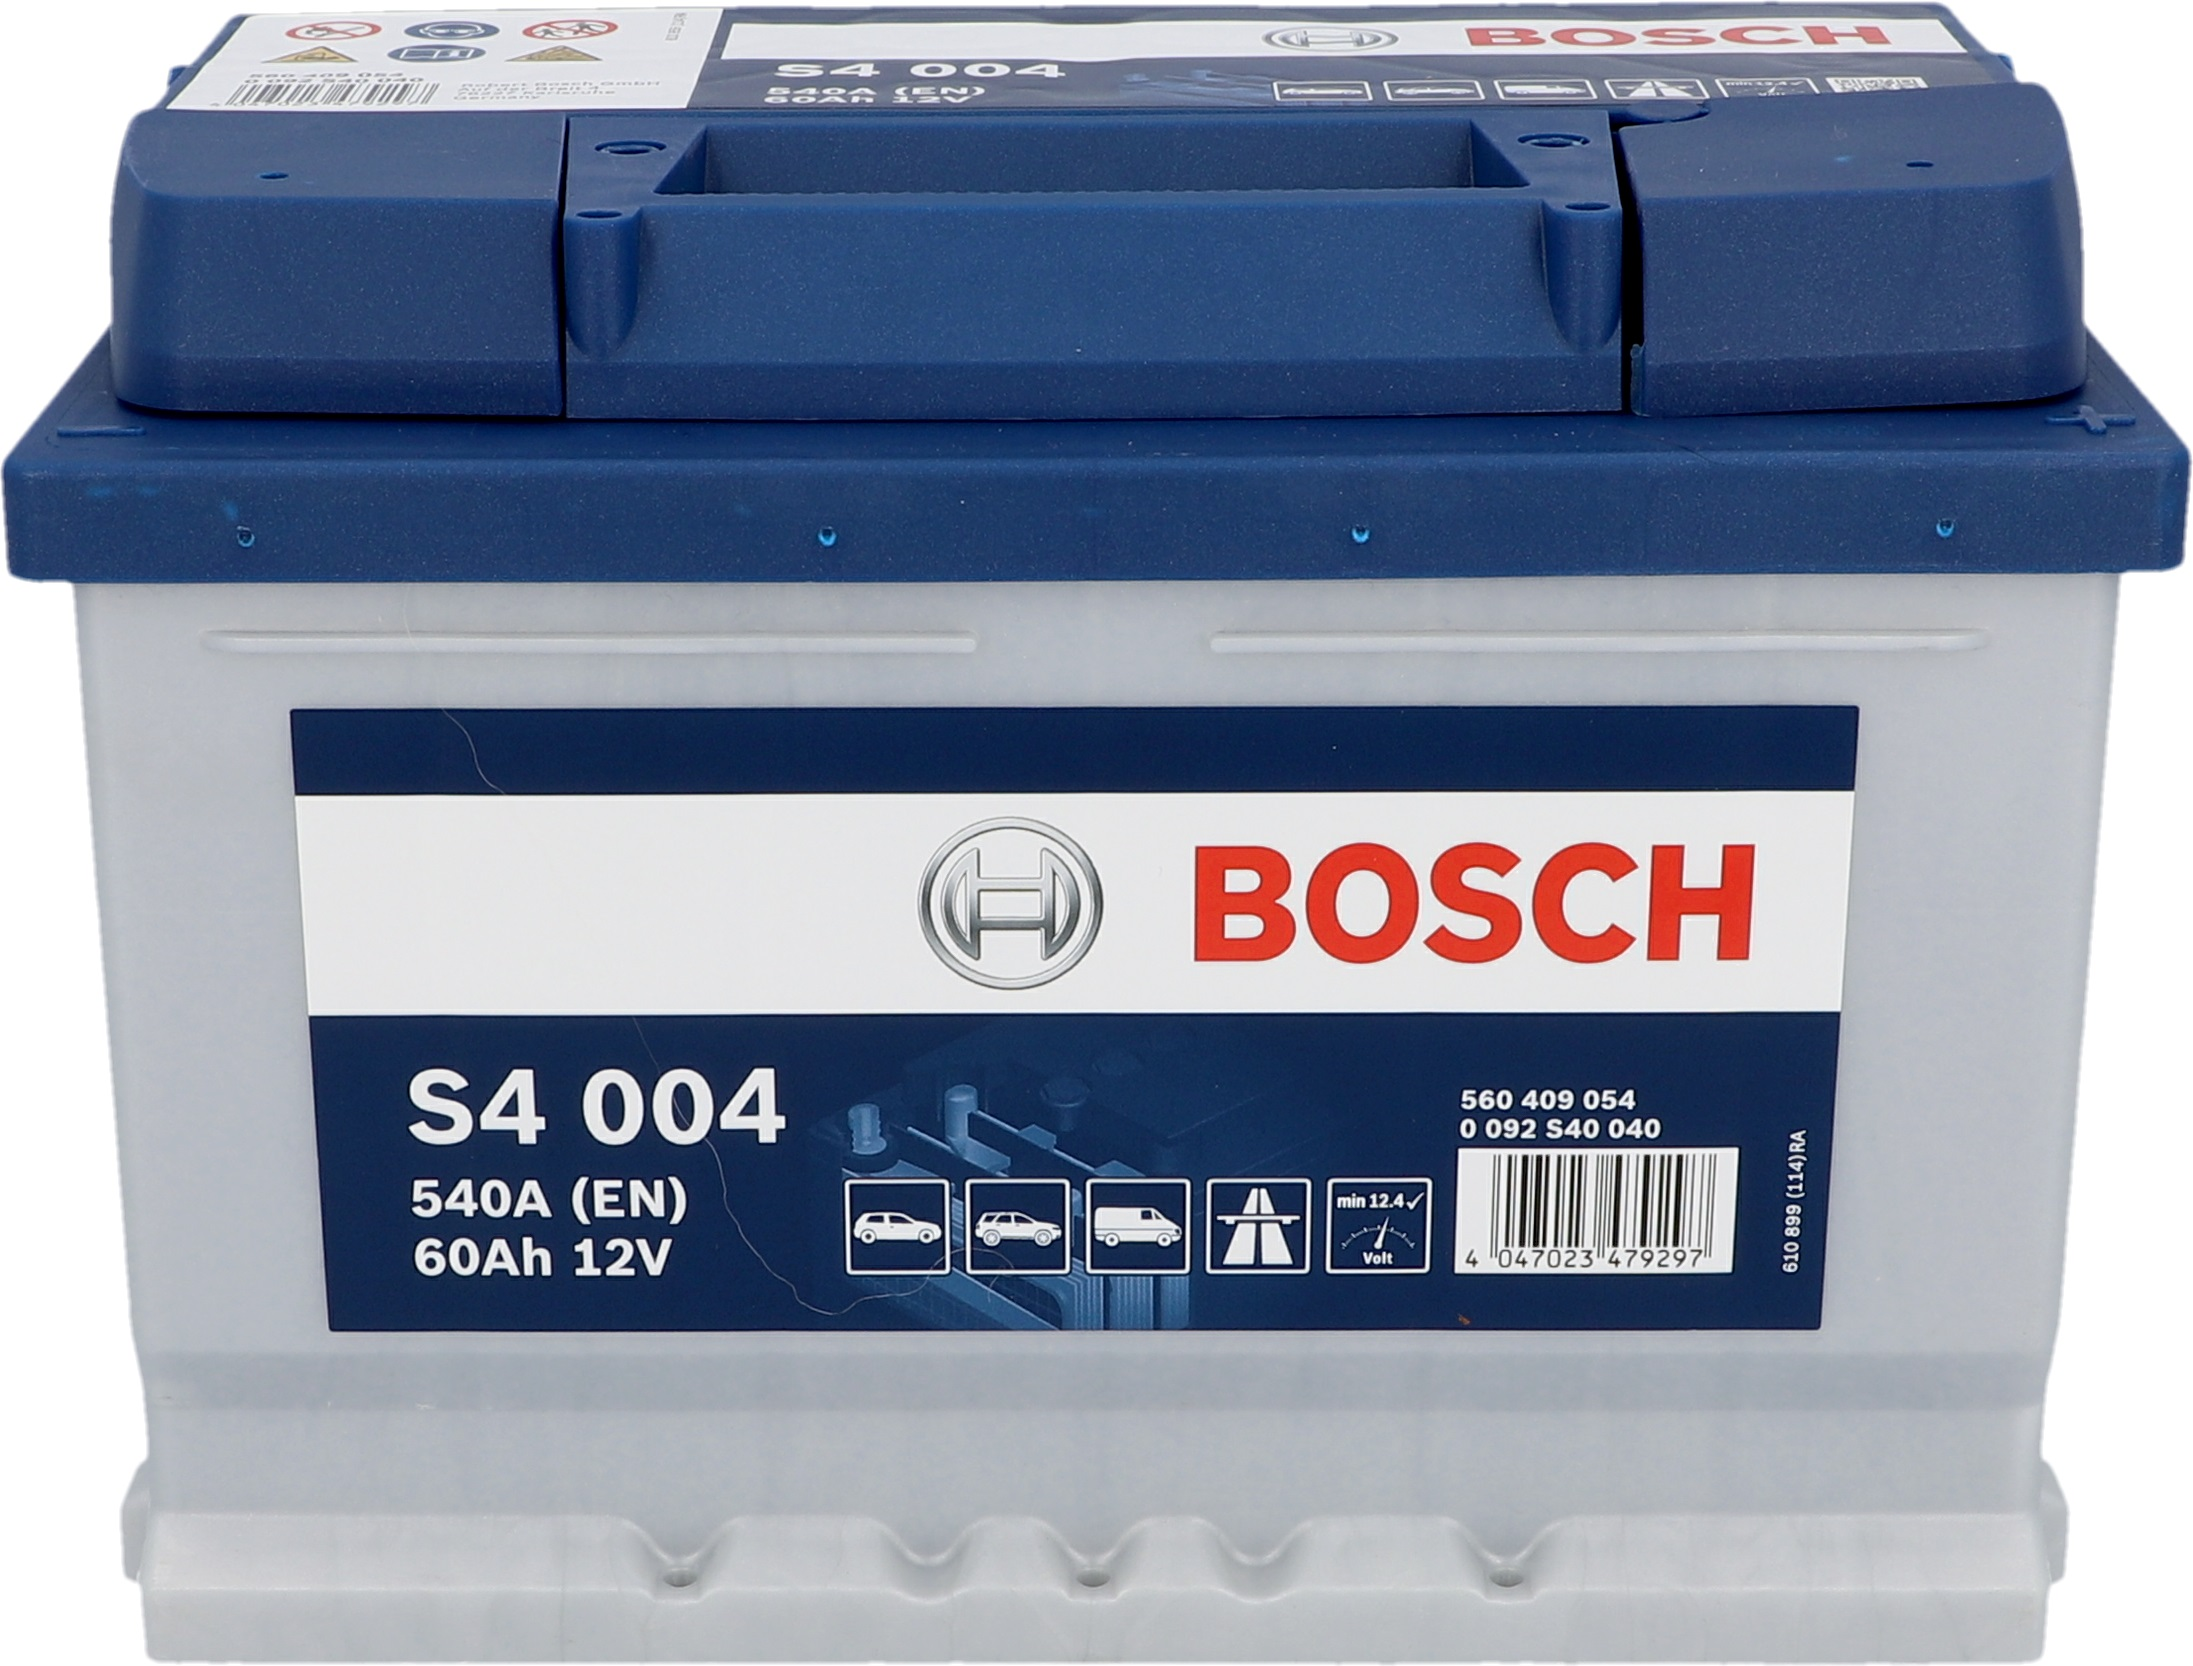 bosch starterbatterie s4 60 ah 540 a batterien auto globus baumarkt online shop. Black Bedroom Furniture Sets. Home Design Ideas